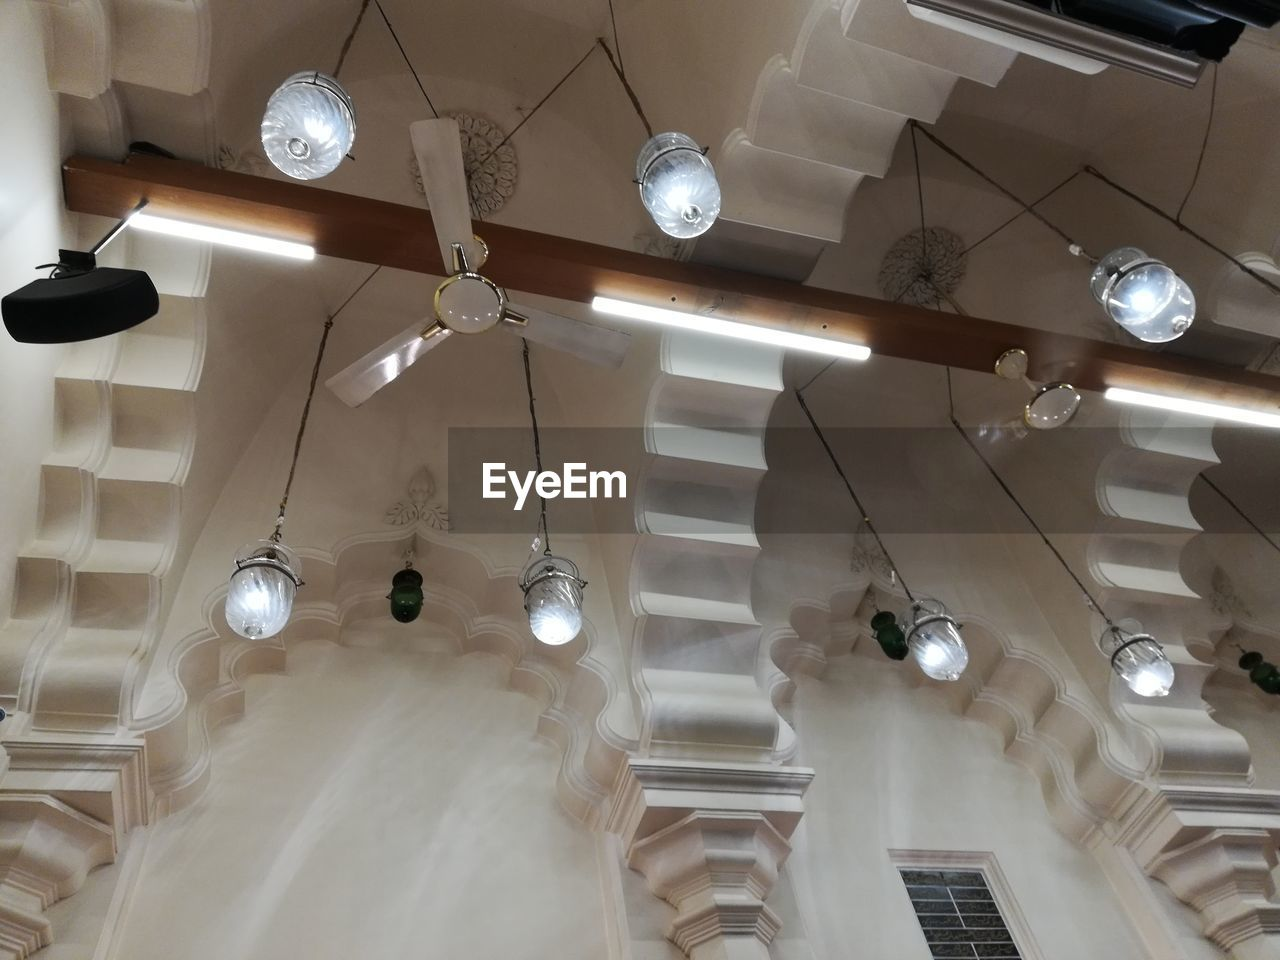 lighting equipment, ceiling, hanging, indoors, low angle view, illuminated, light, decoration, chandelier, pendant light, no people, electric light, architecture, electricity, built structure, home interior, modern, group, glowing, light fixture, electric lamp, luxury, ornate